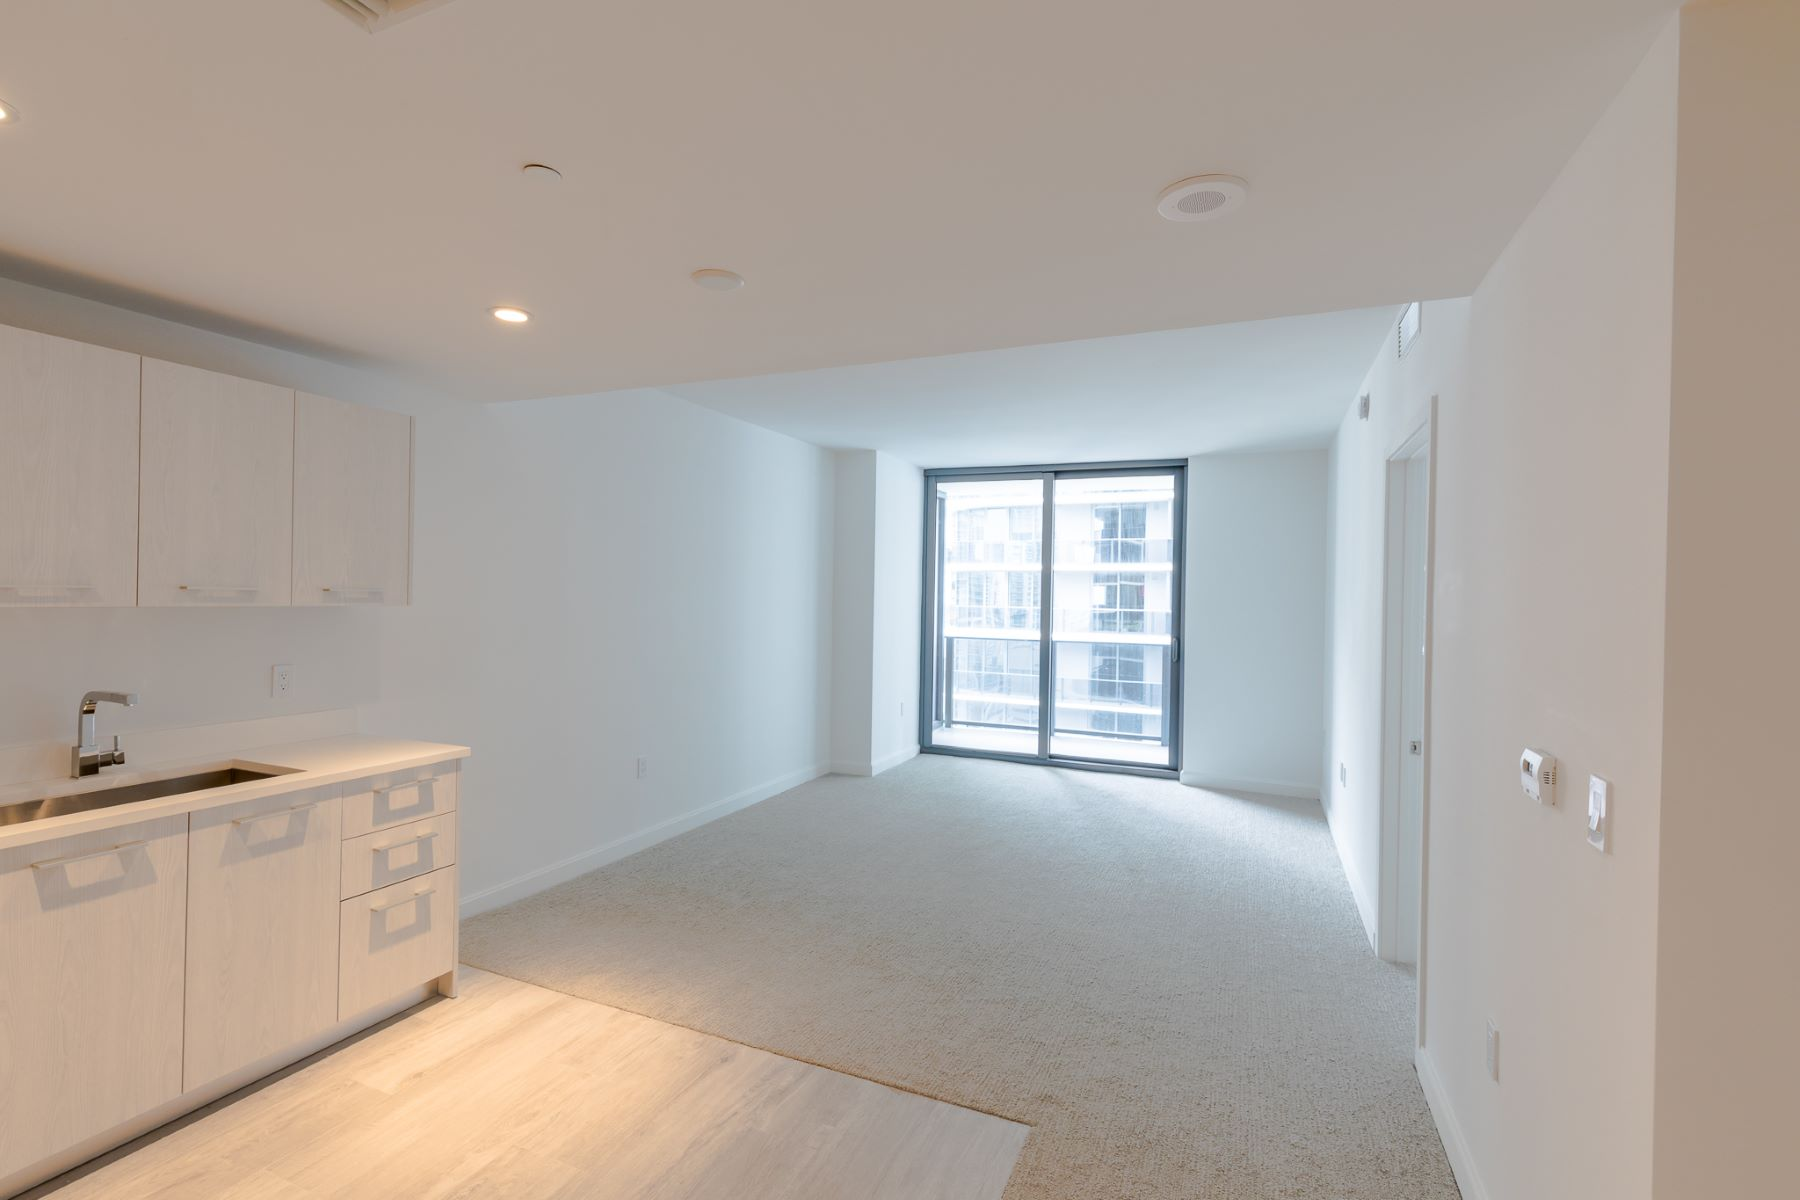 Additional photo for property listing at 45 Sw 9th Street 45 Sw9th Street 2207 Miami, Florida 33130 United States